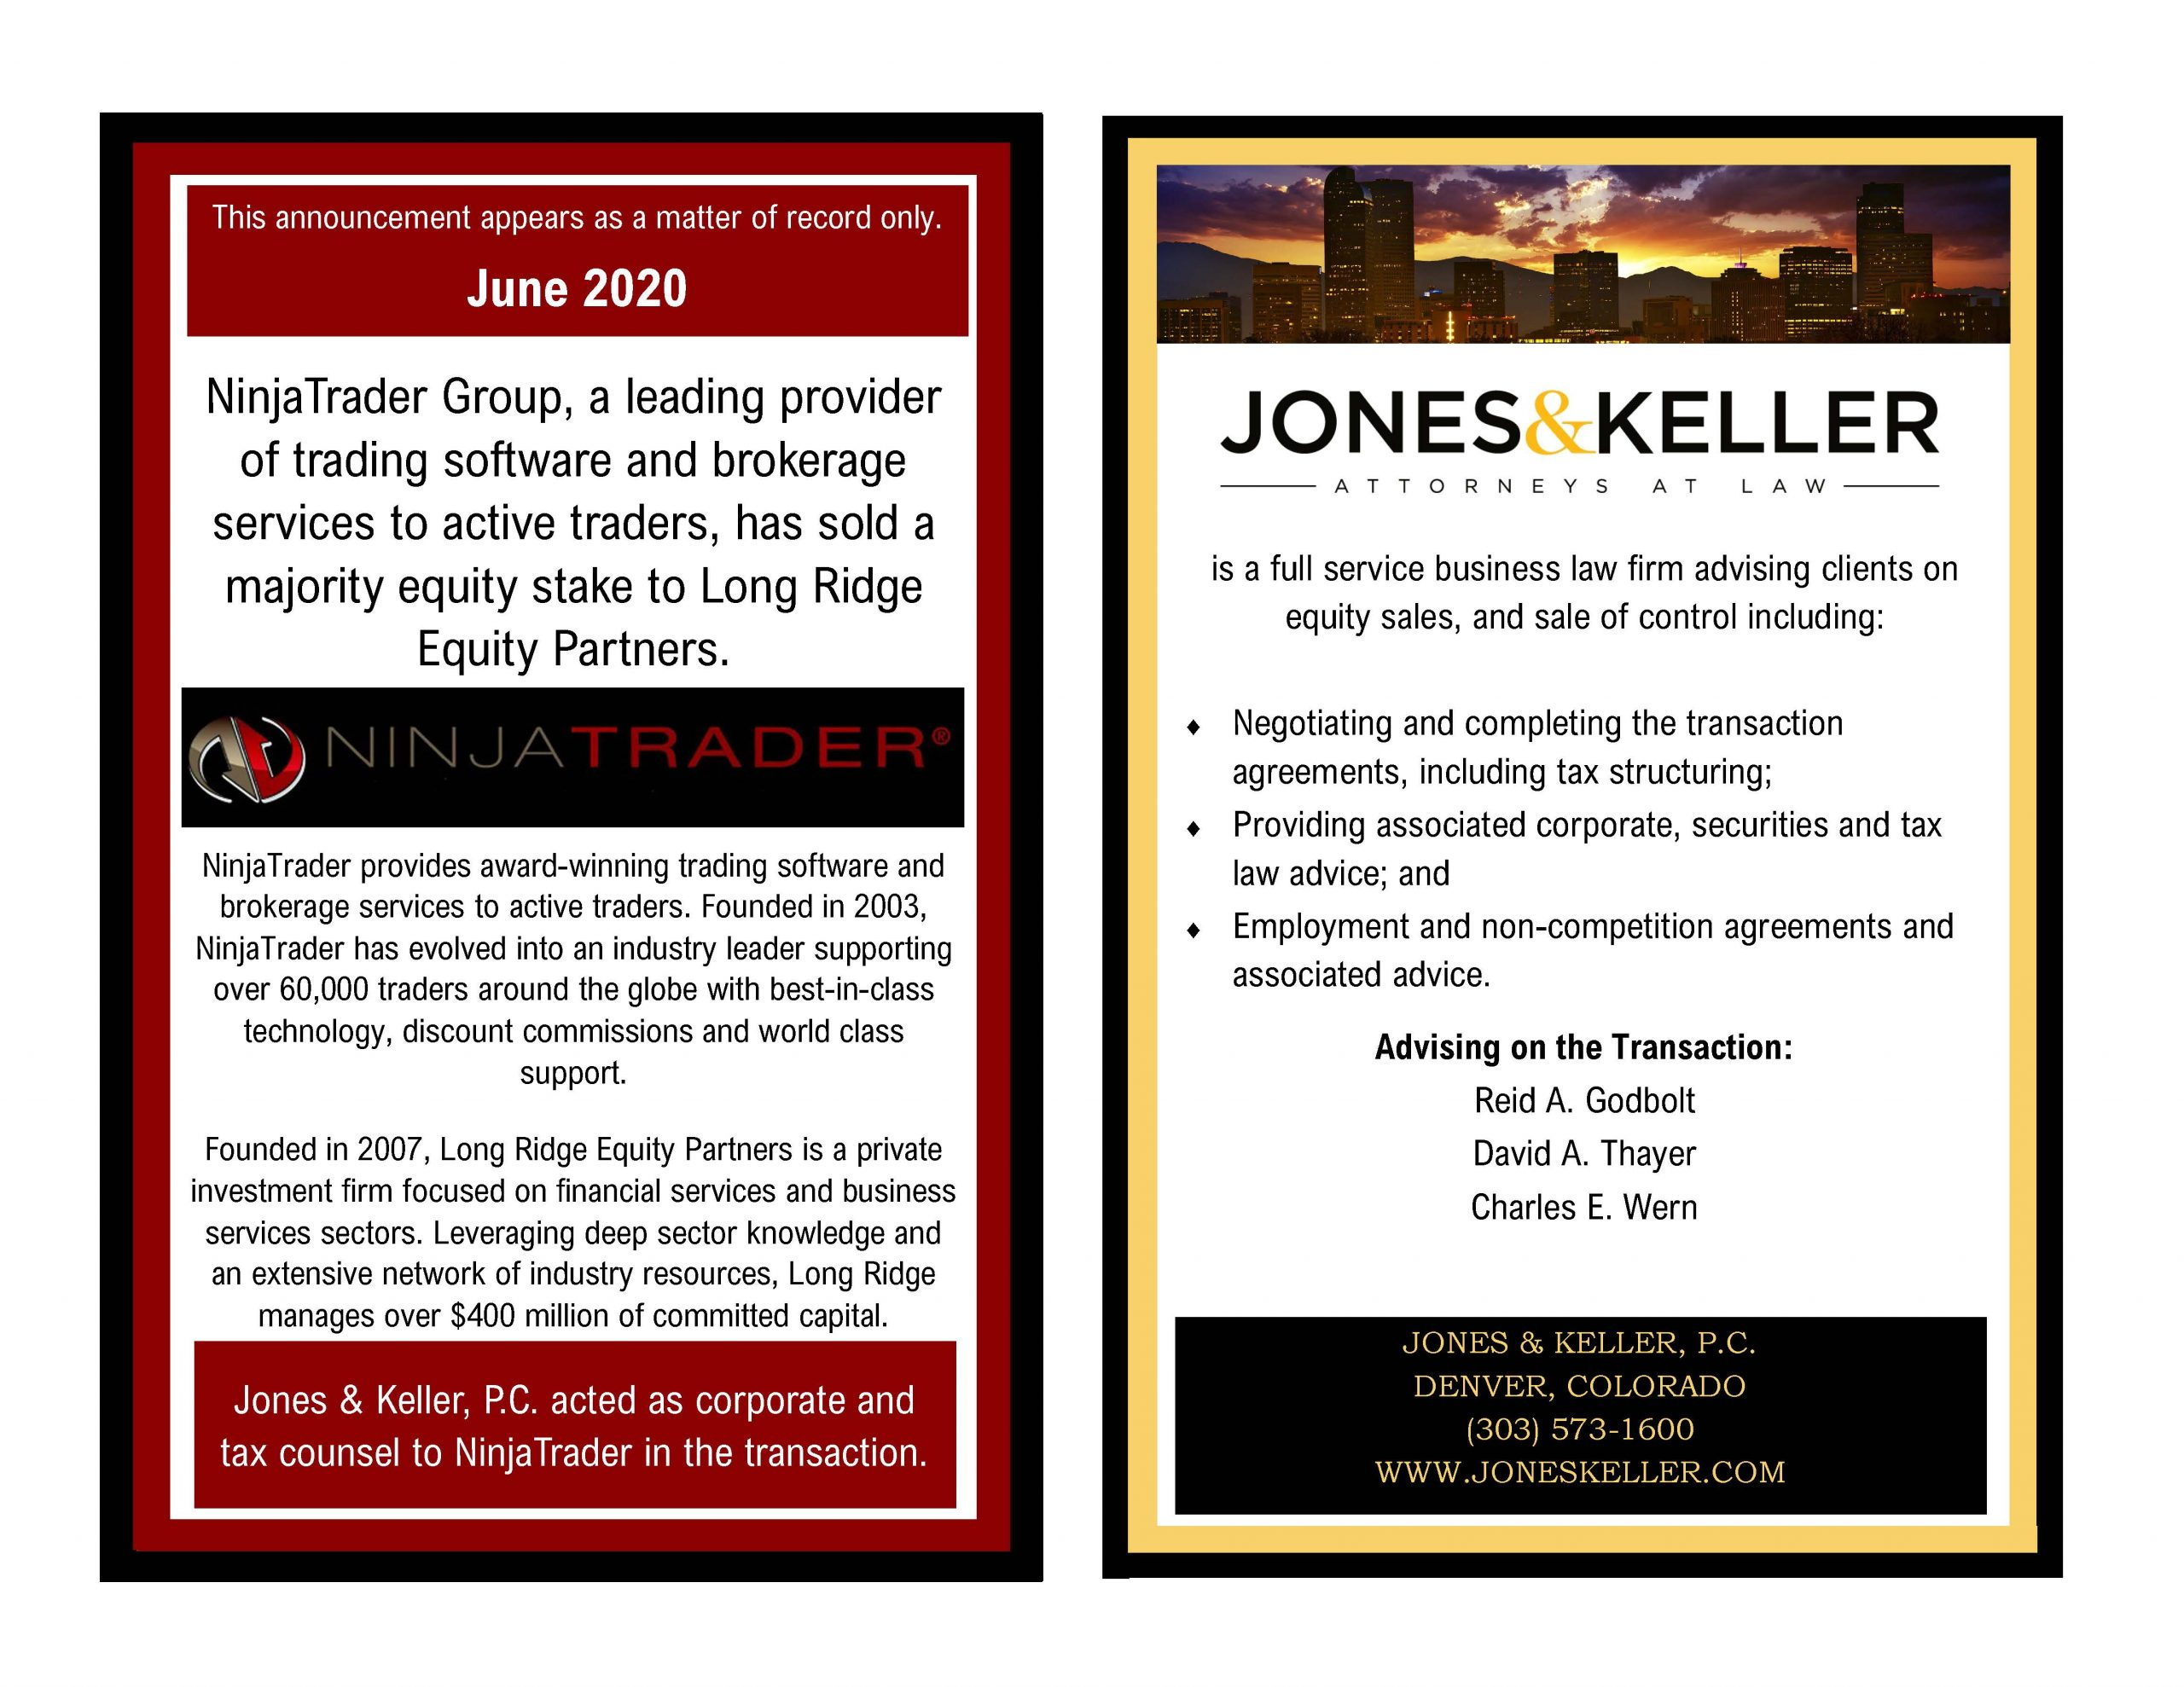 Jones Keller Advises Ninjatrader Group Majority Equity Stake Sale To Long Ridge Equity Partners